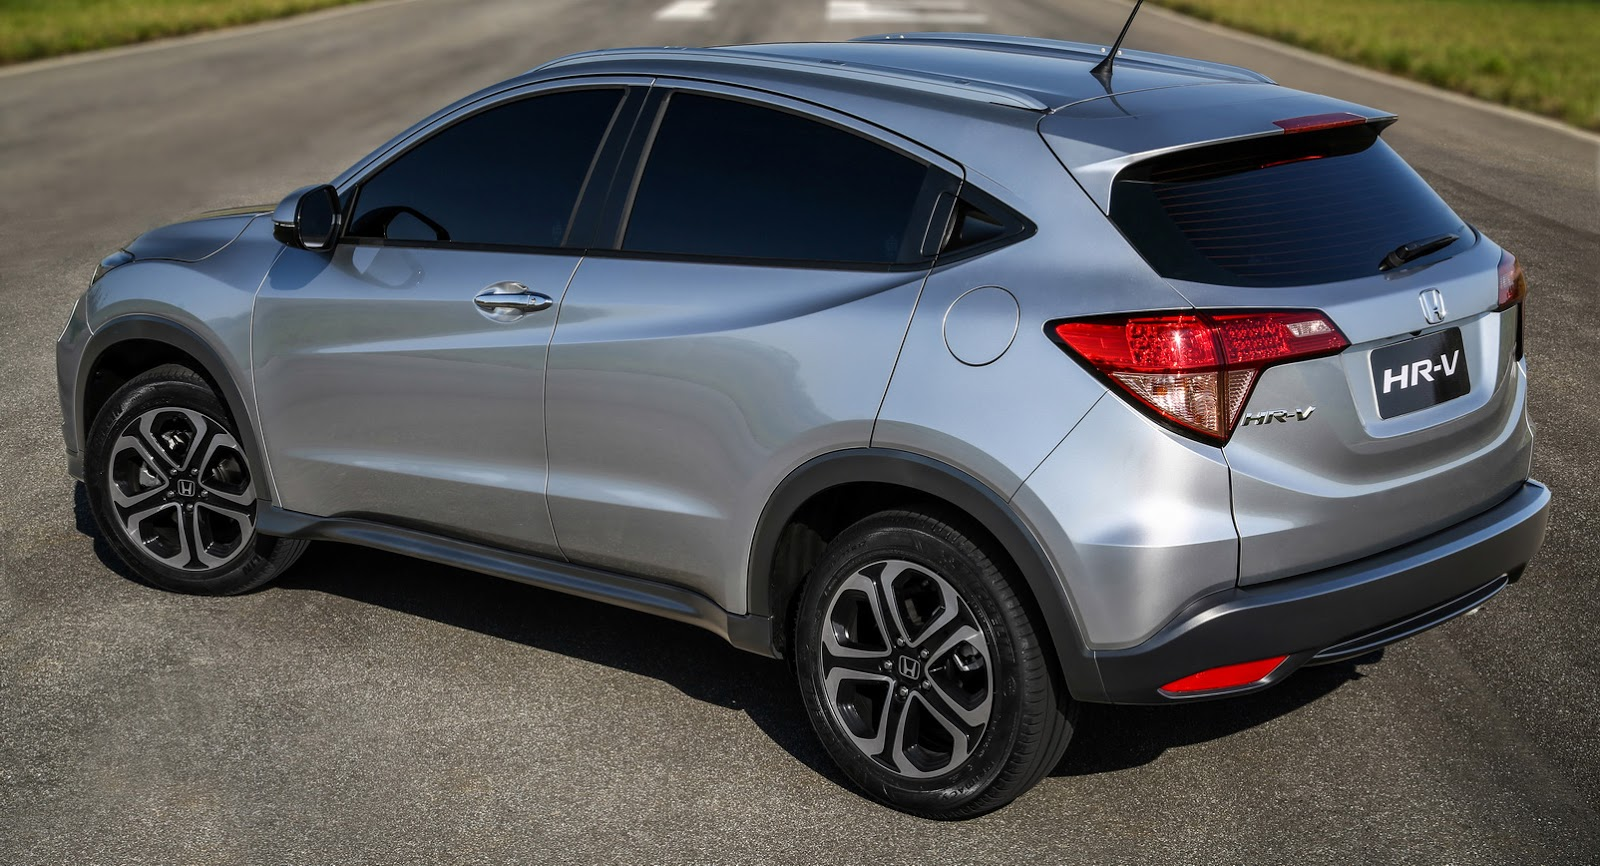 Honda S New Hr V Makes Its Brazilian Debut With 1 8l Flex